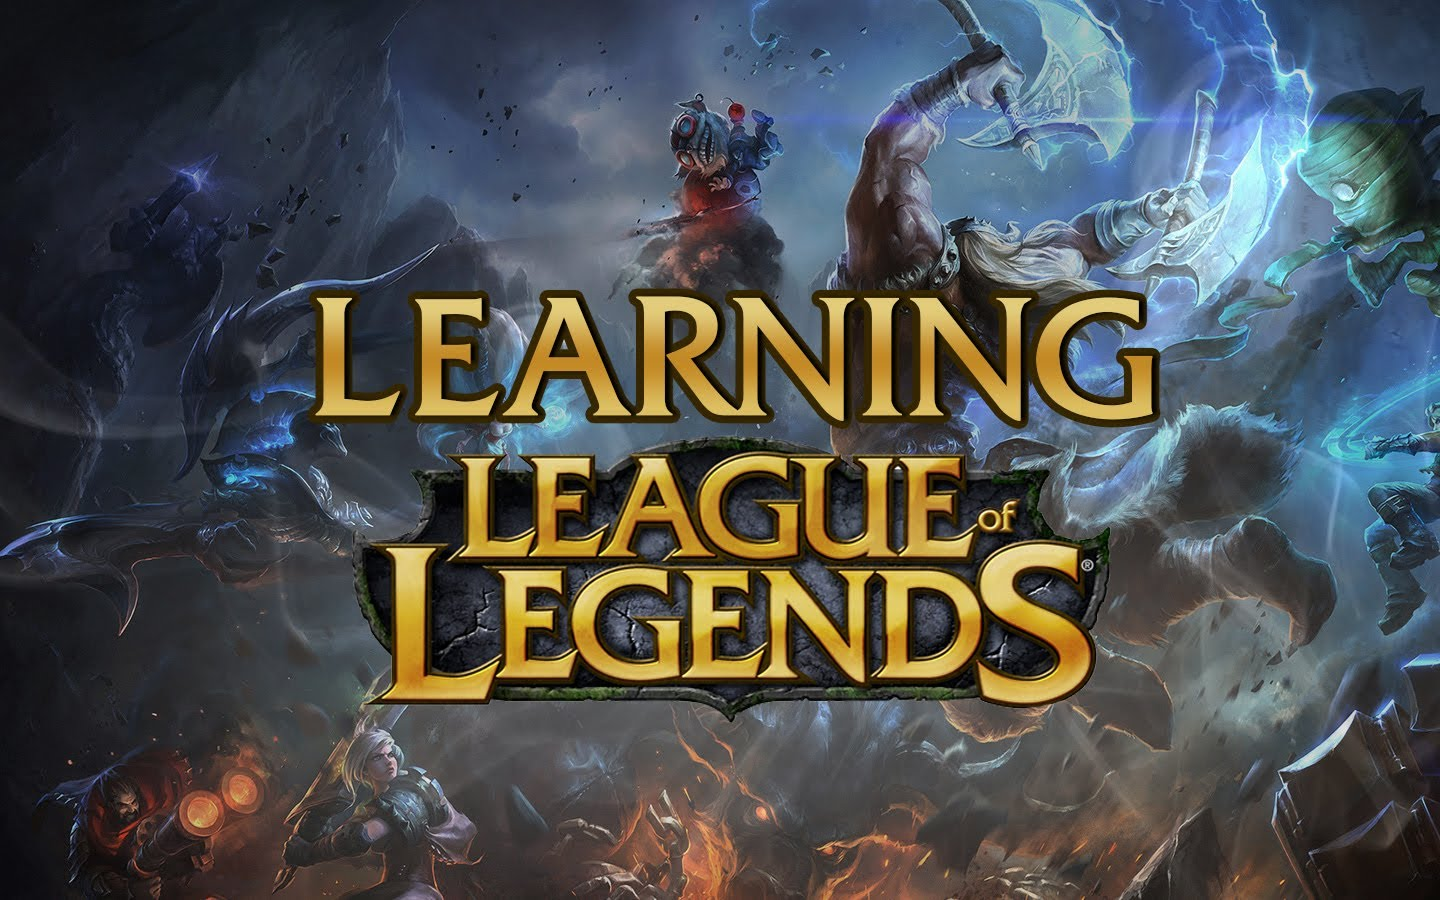 What You Need To Know Before Watching The Flaktest Gaming League of Legends Grand Final On Saturday!